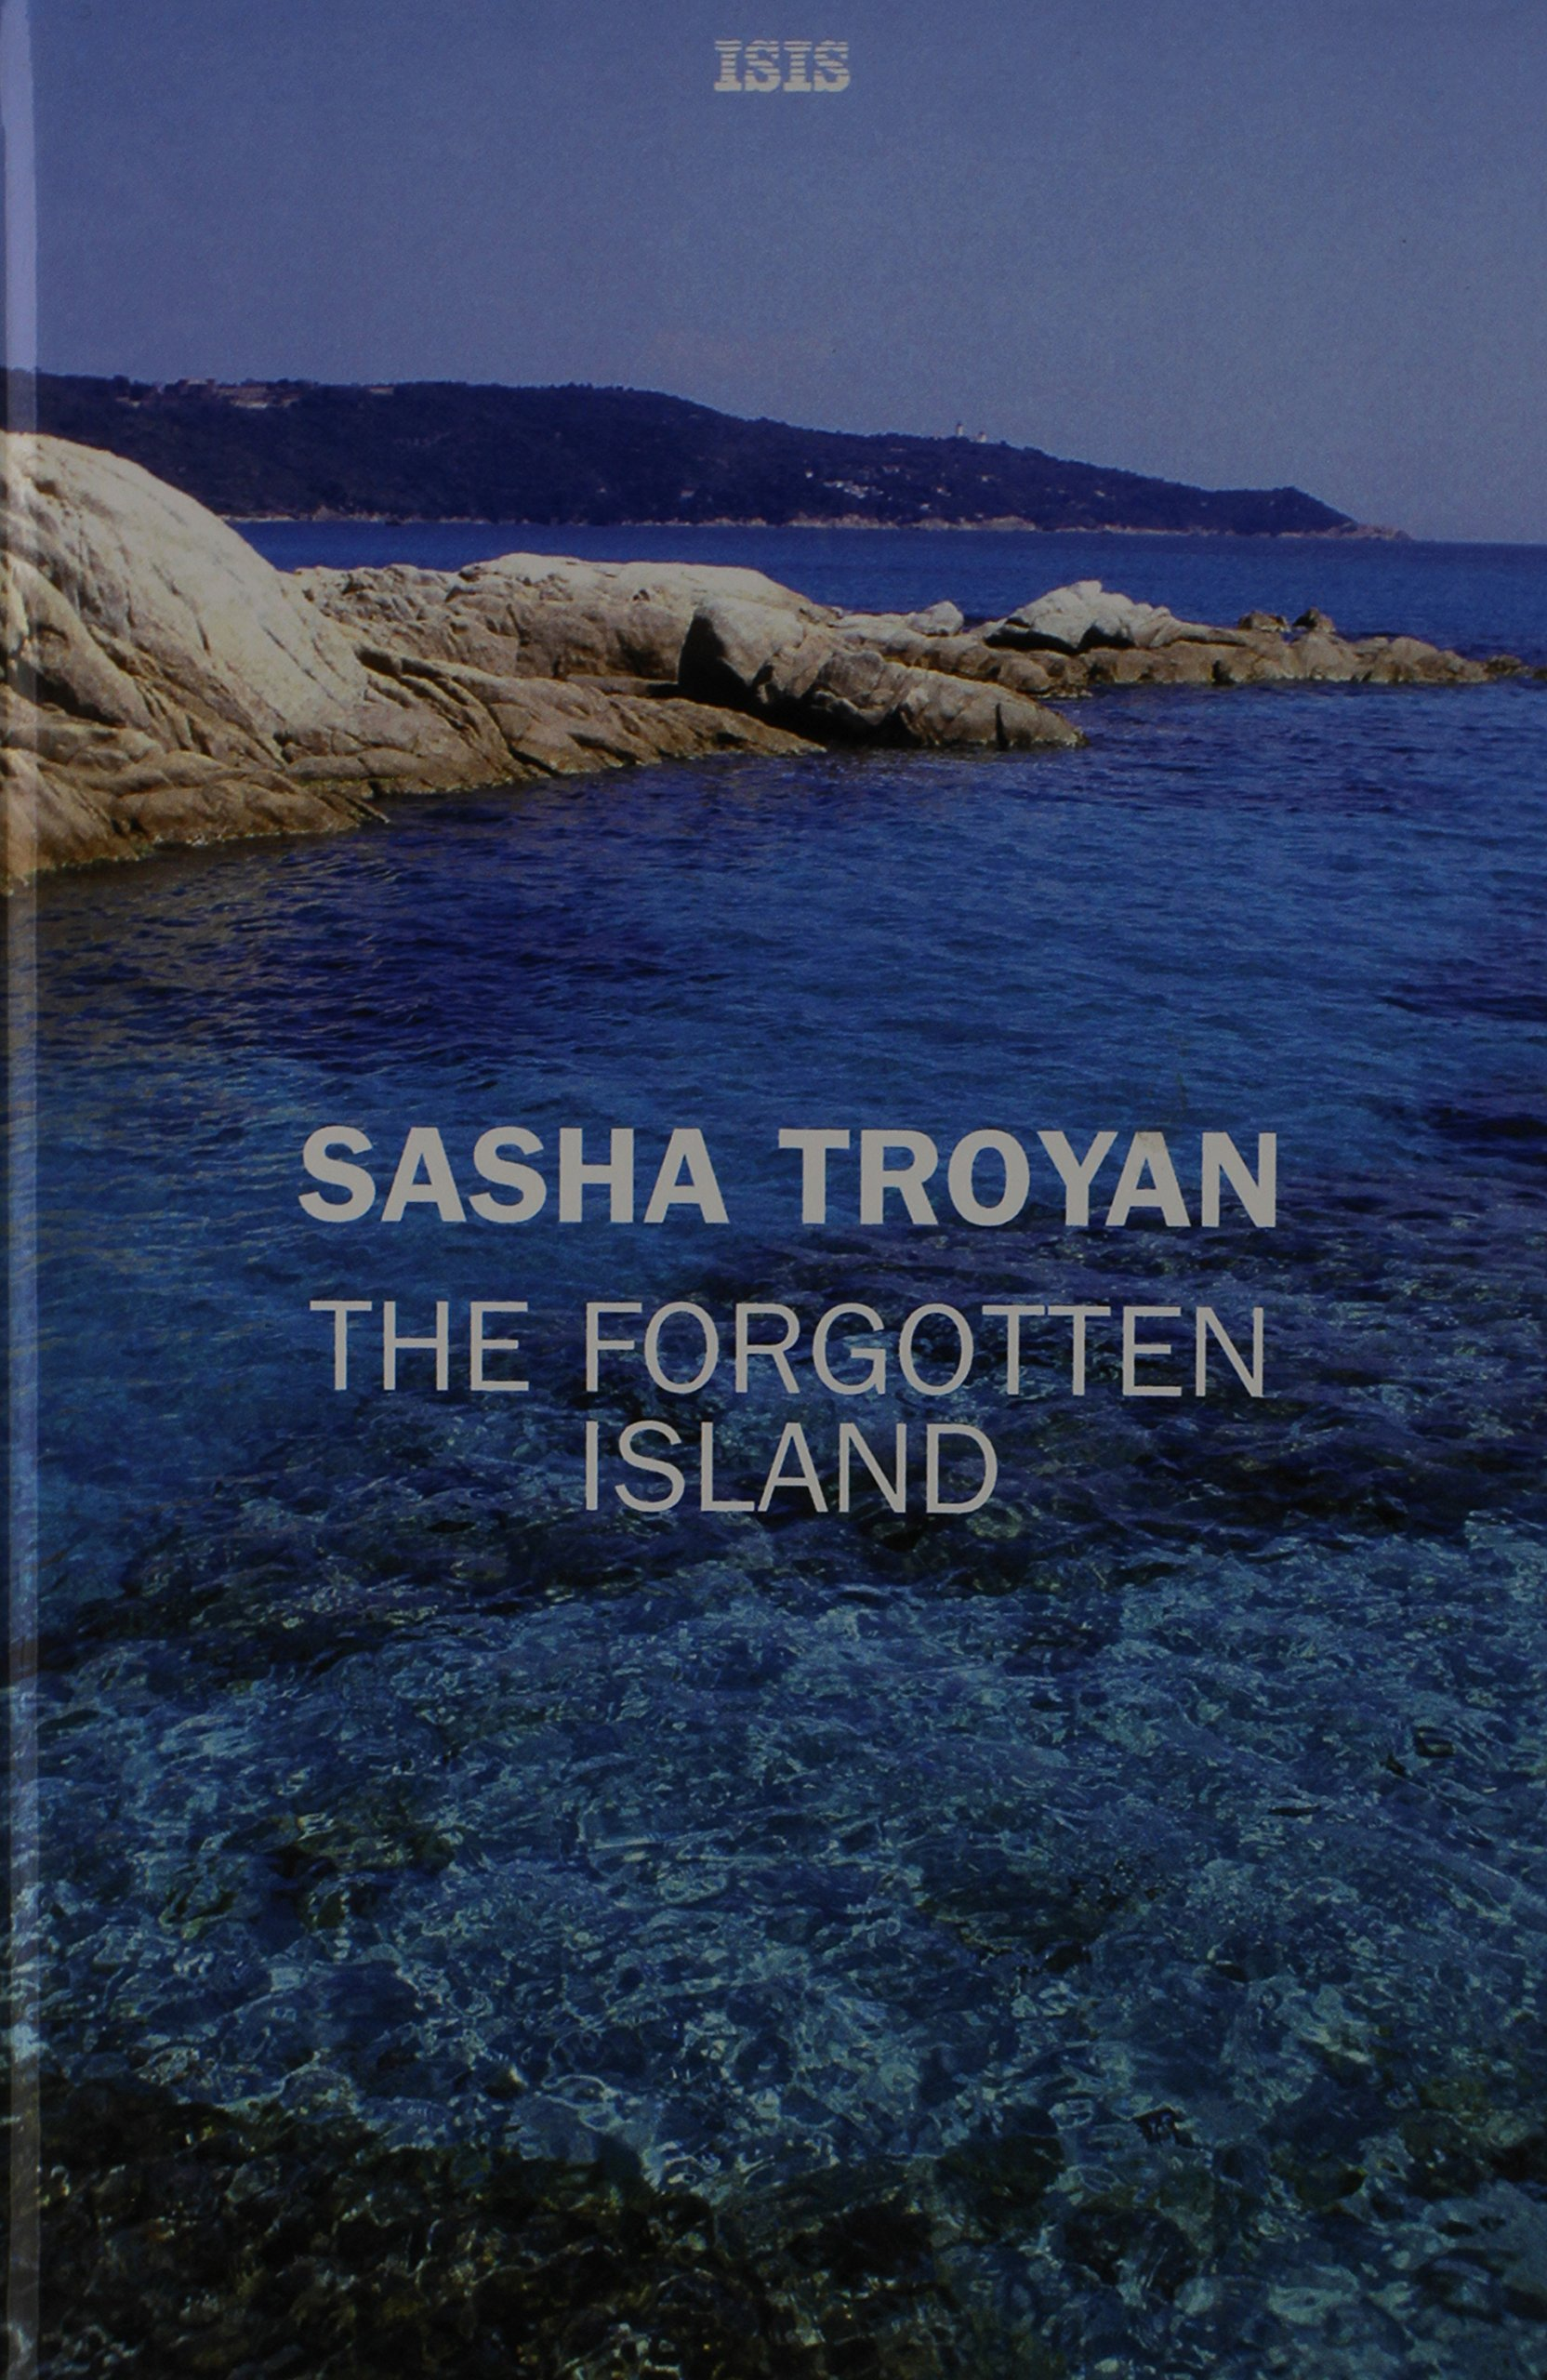 The Forgotten Island by Sasha Troyan